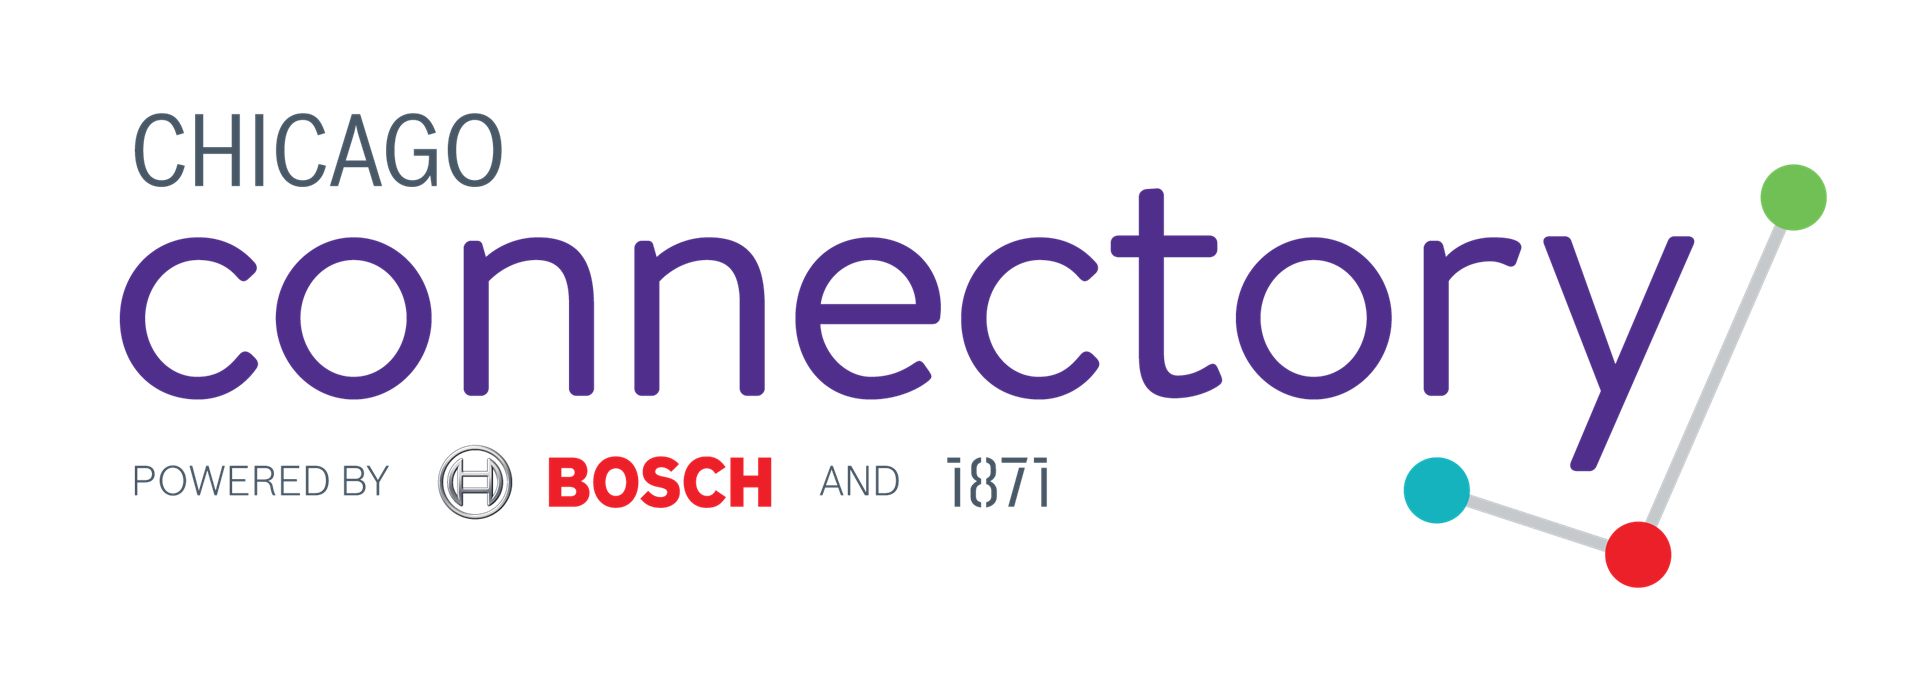 ChicagoConnectory_Logo.png